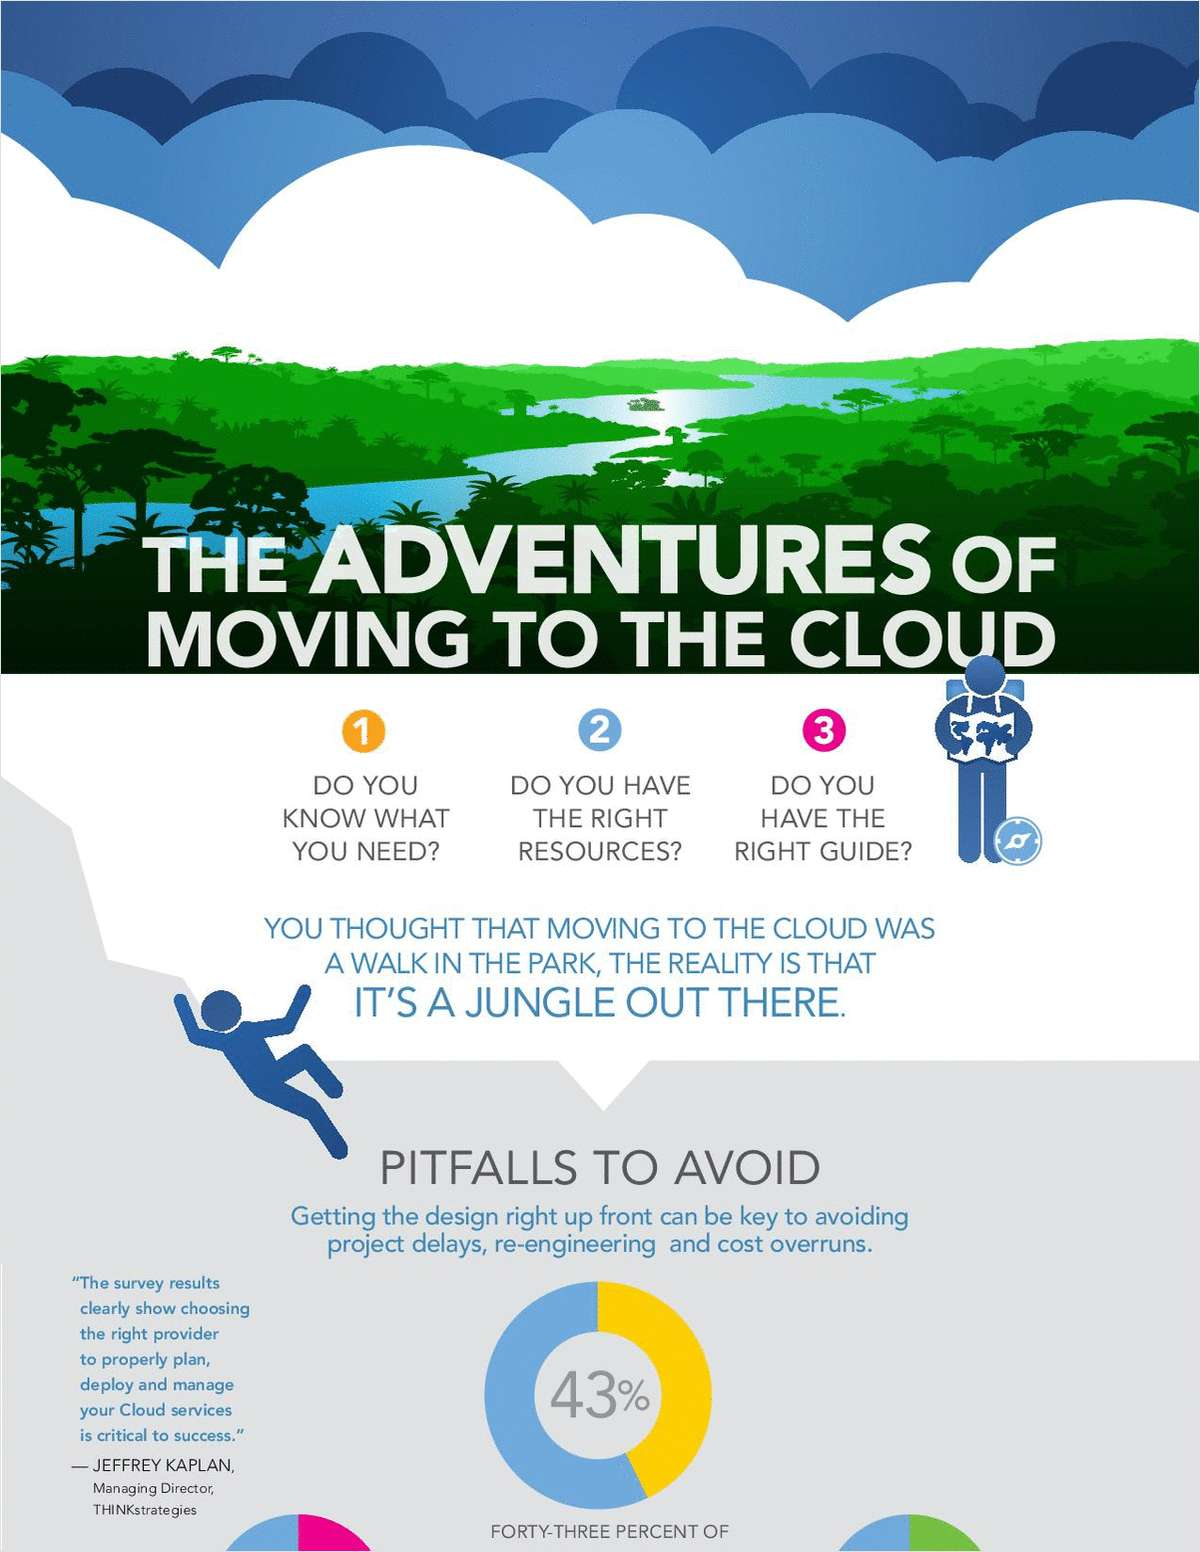 The Adventures of Moving to the Cloud